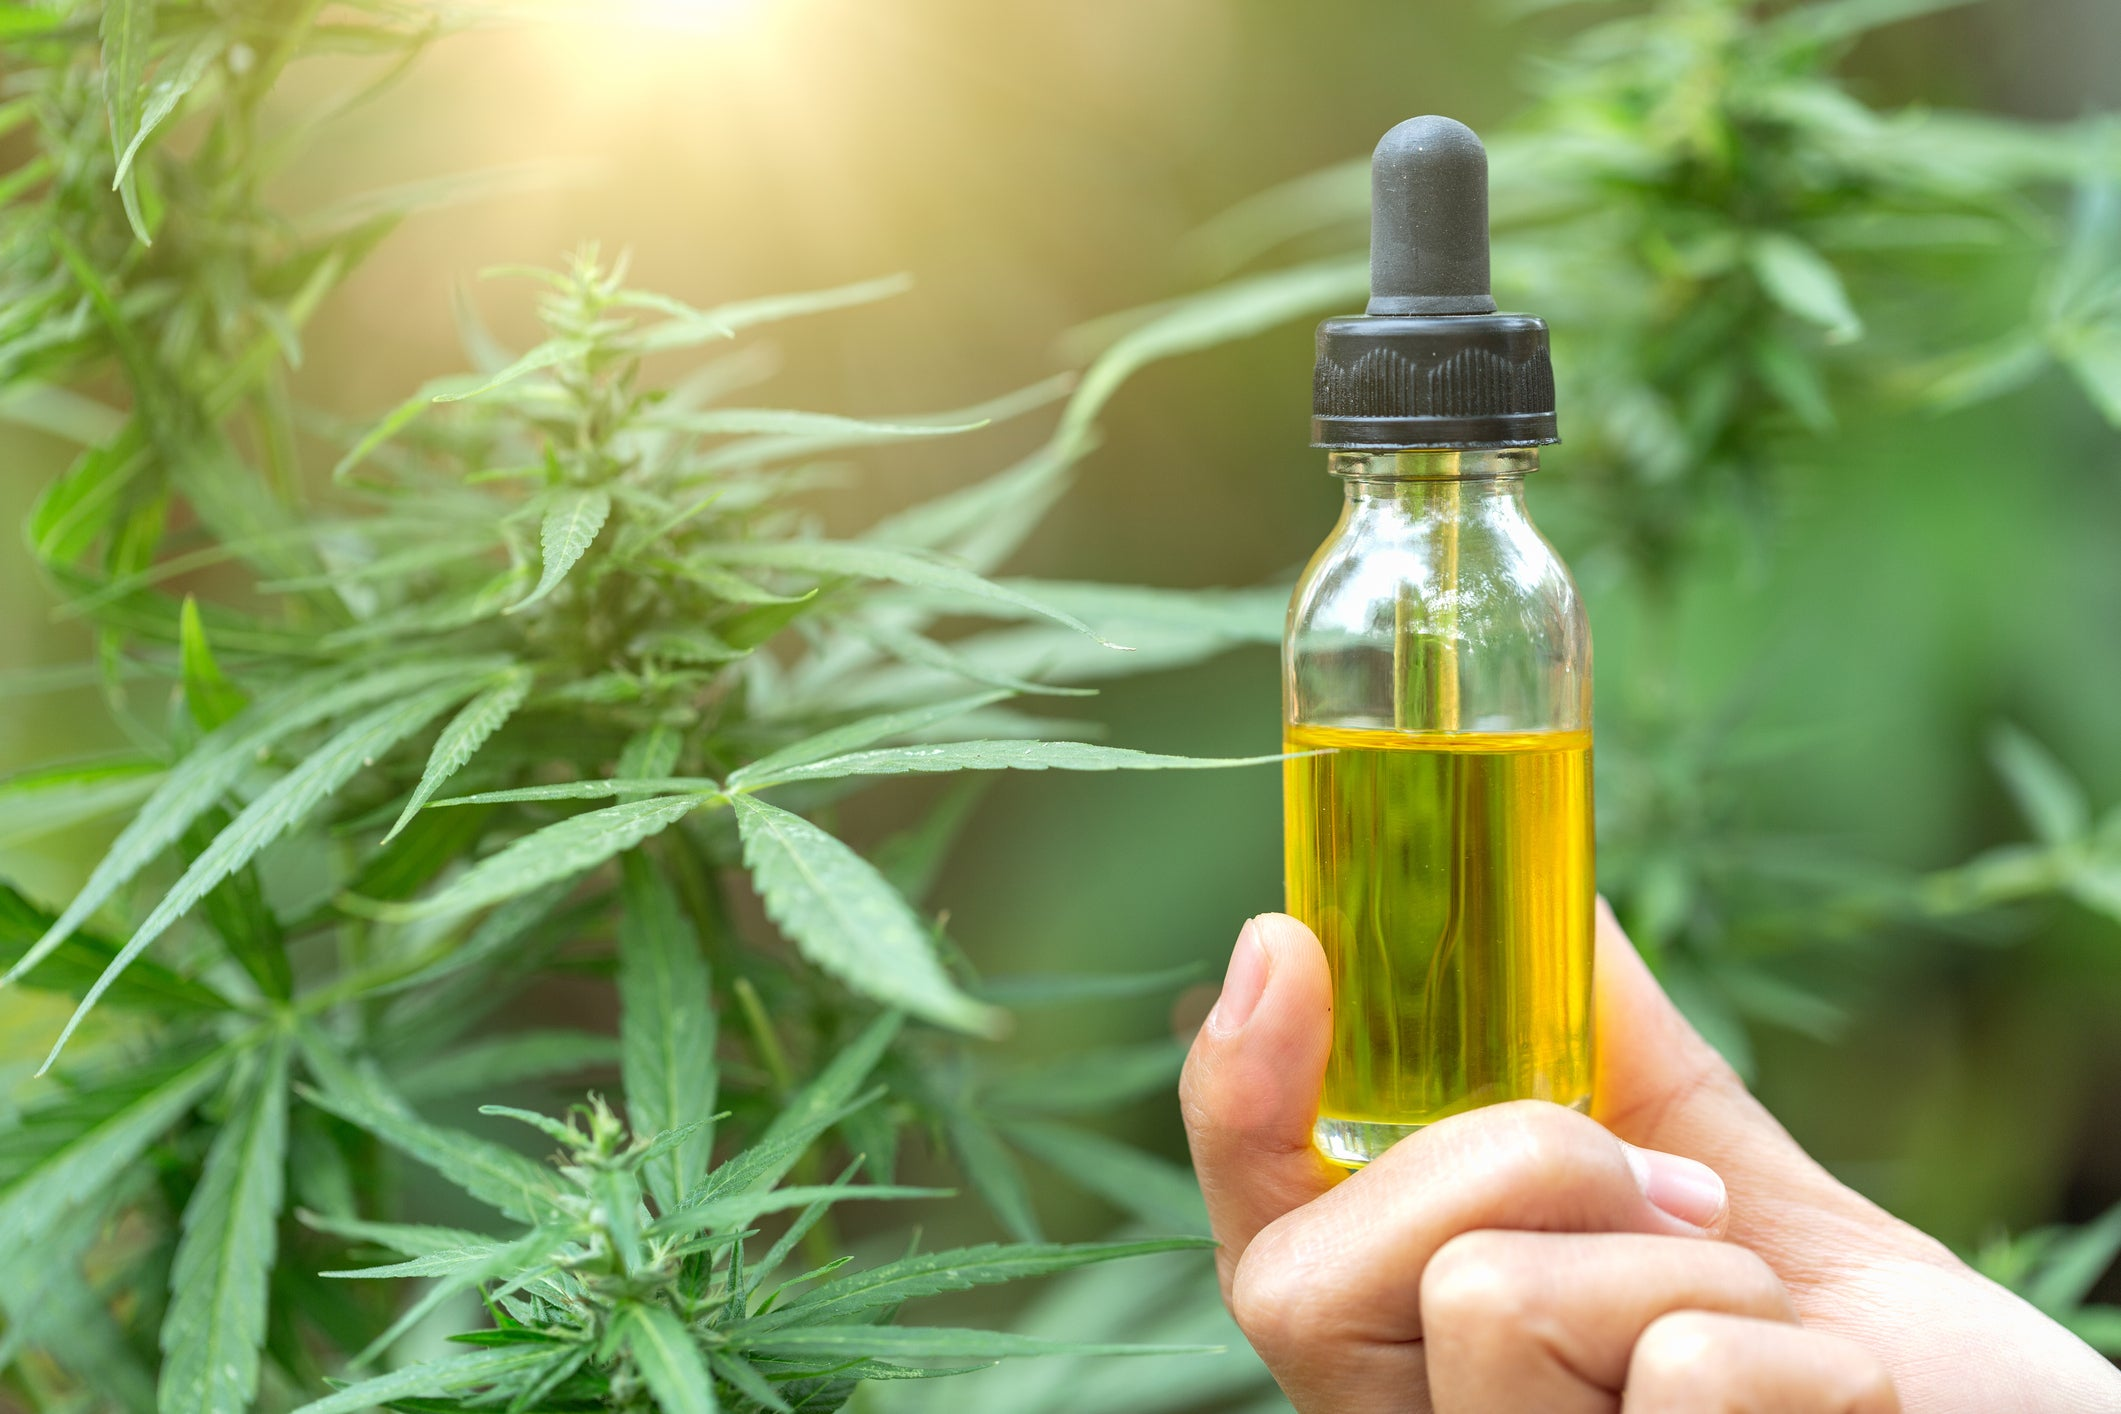 Rumored Buzz on 7 Benefits And Uses Of Cbd Oil (Plus Side Effects)